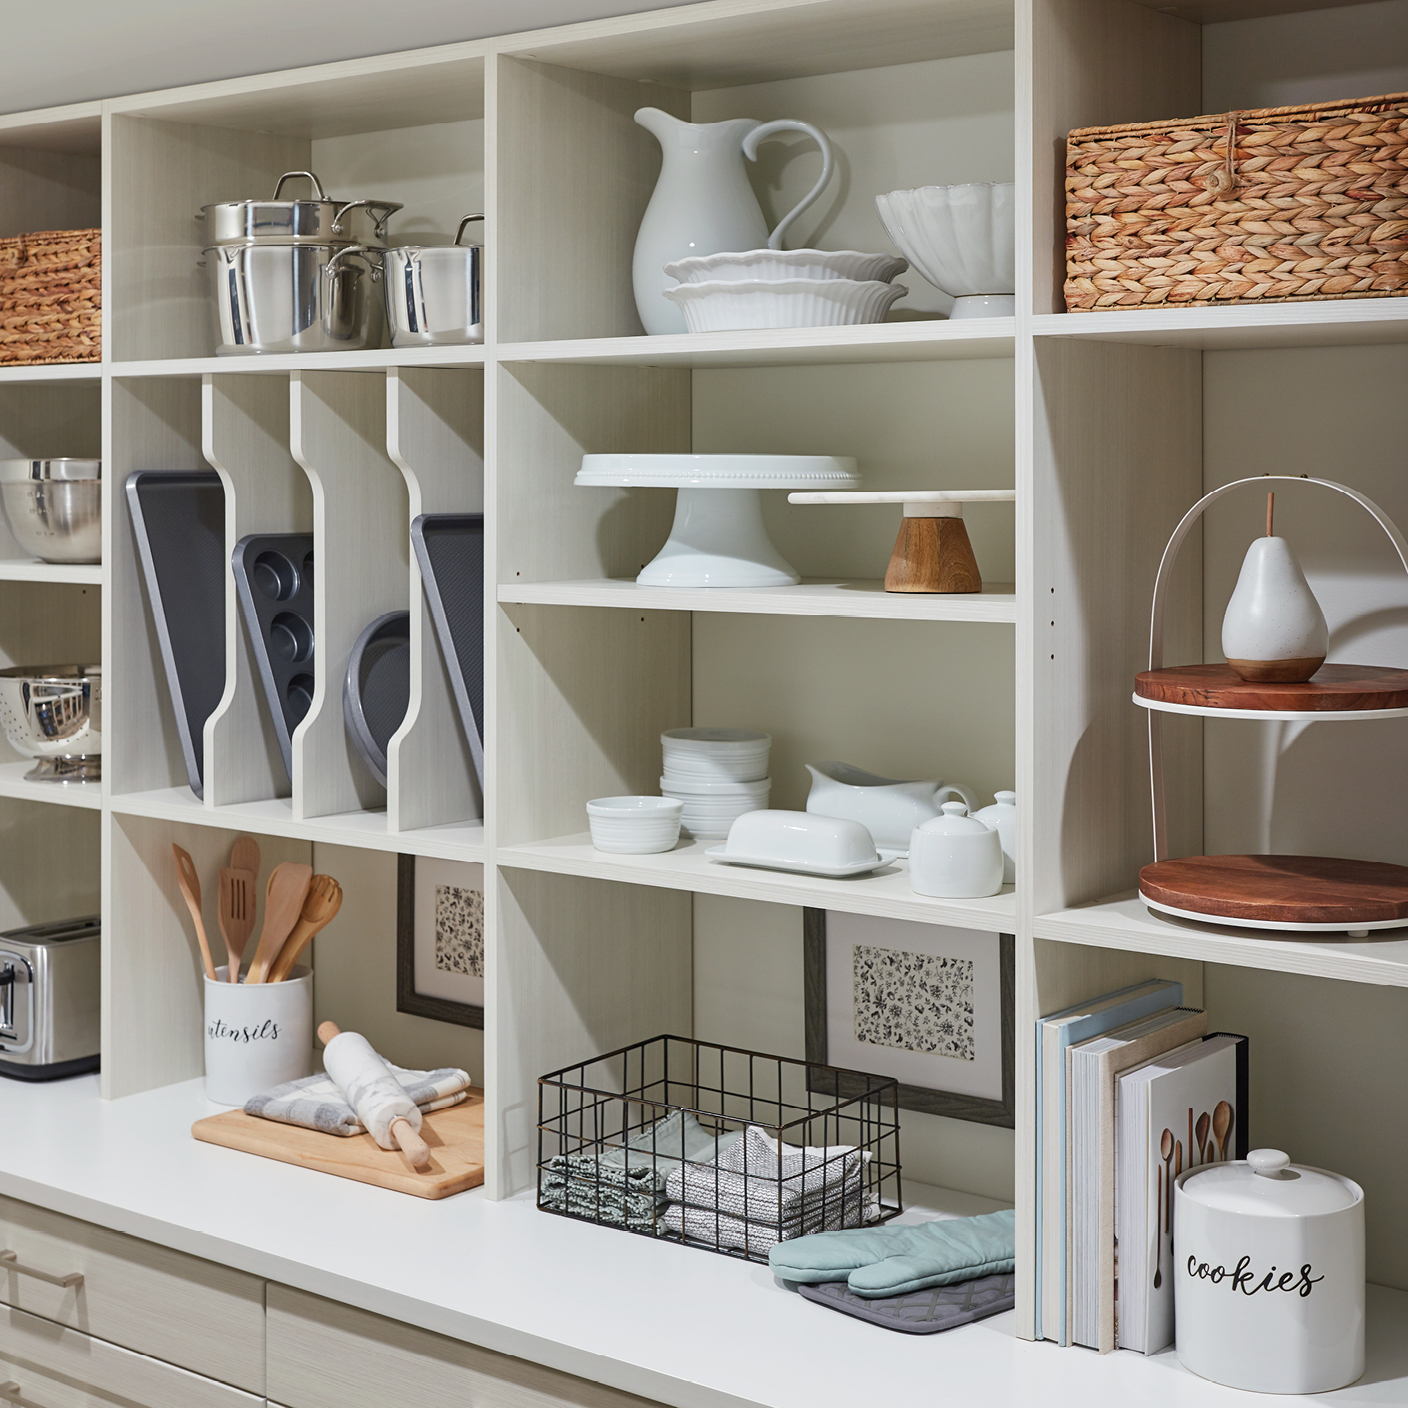 Custom Shelving and sheet pan storage from Inspired Closets